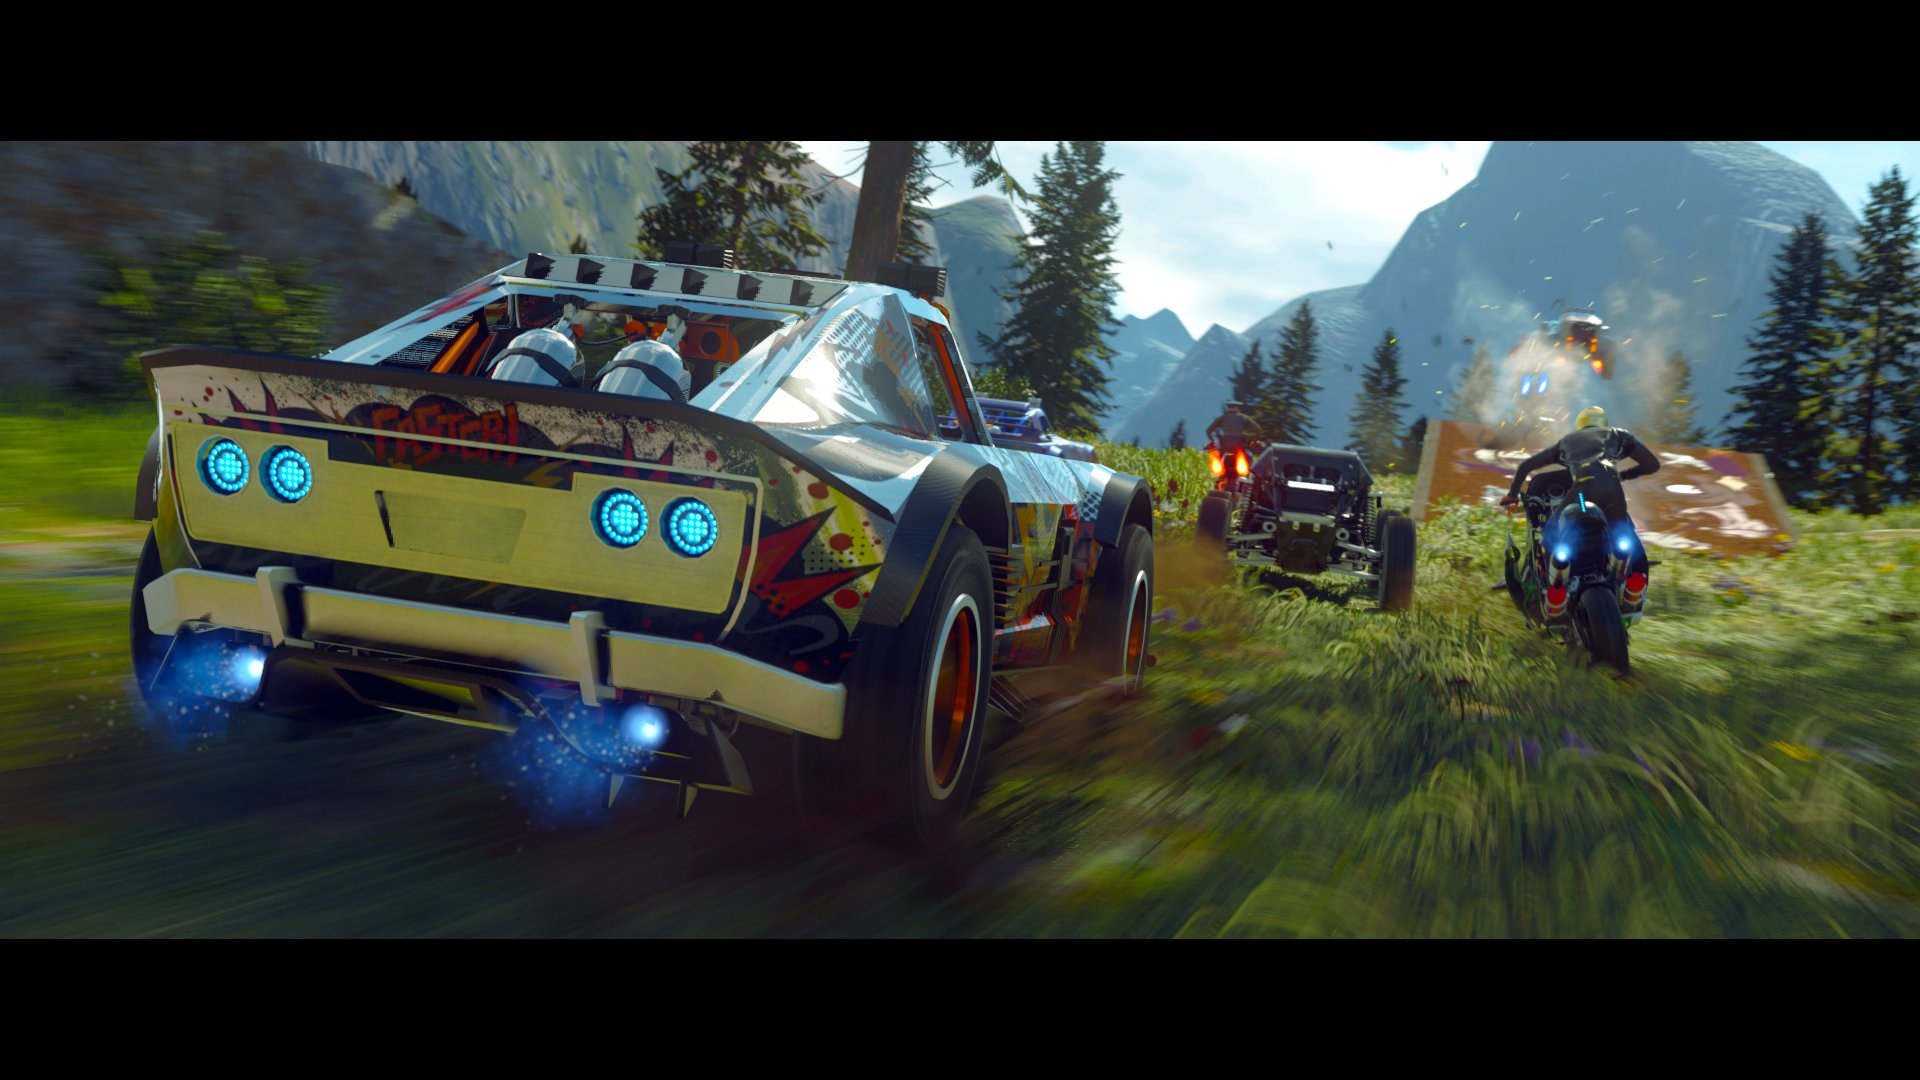 Racing Is Fast And Rough In This New Onrush Trailer - https://t.co/GMXLsaQ7CJ https://t.co/nsImTrIG0d